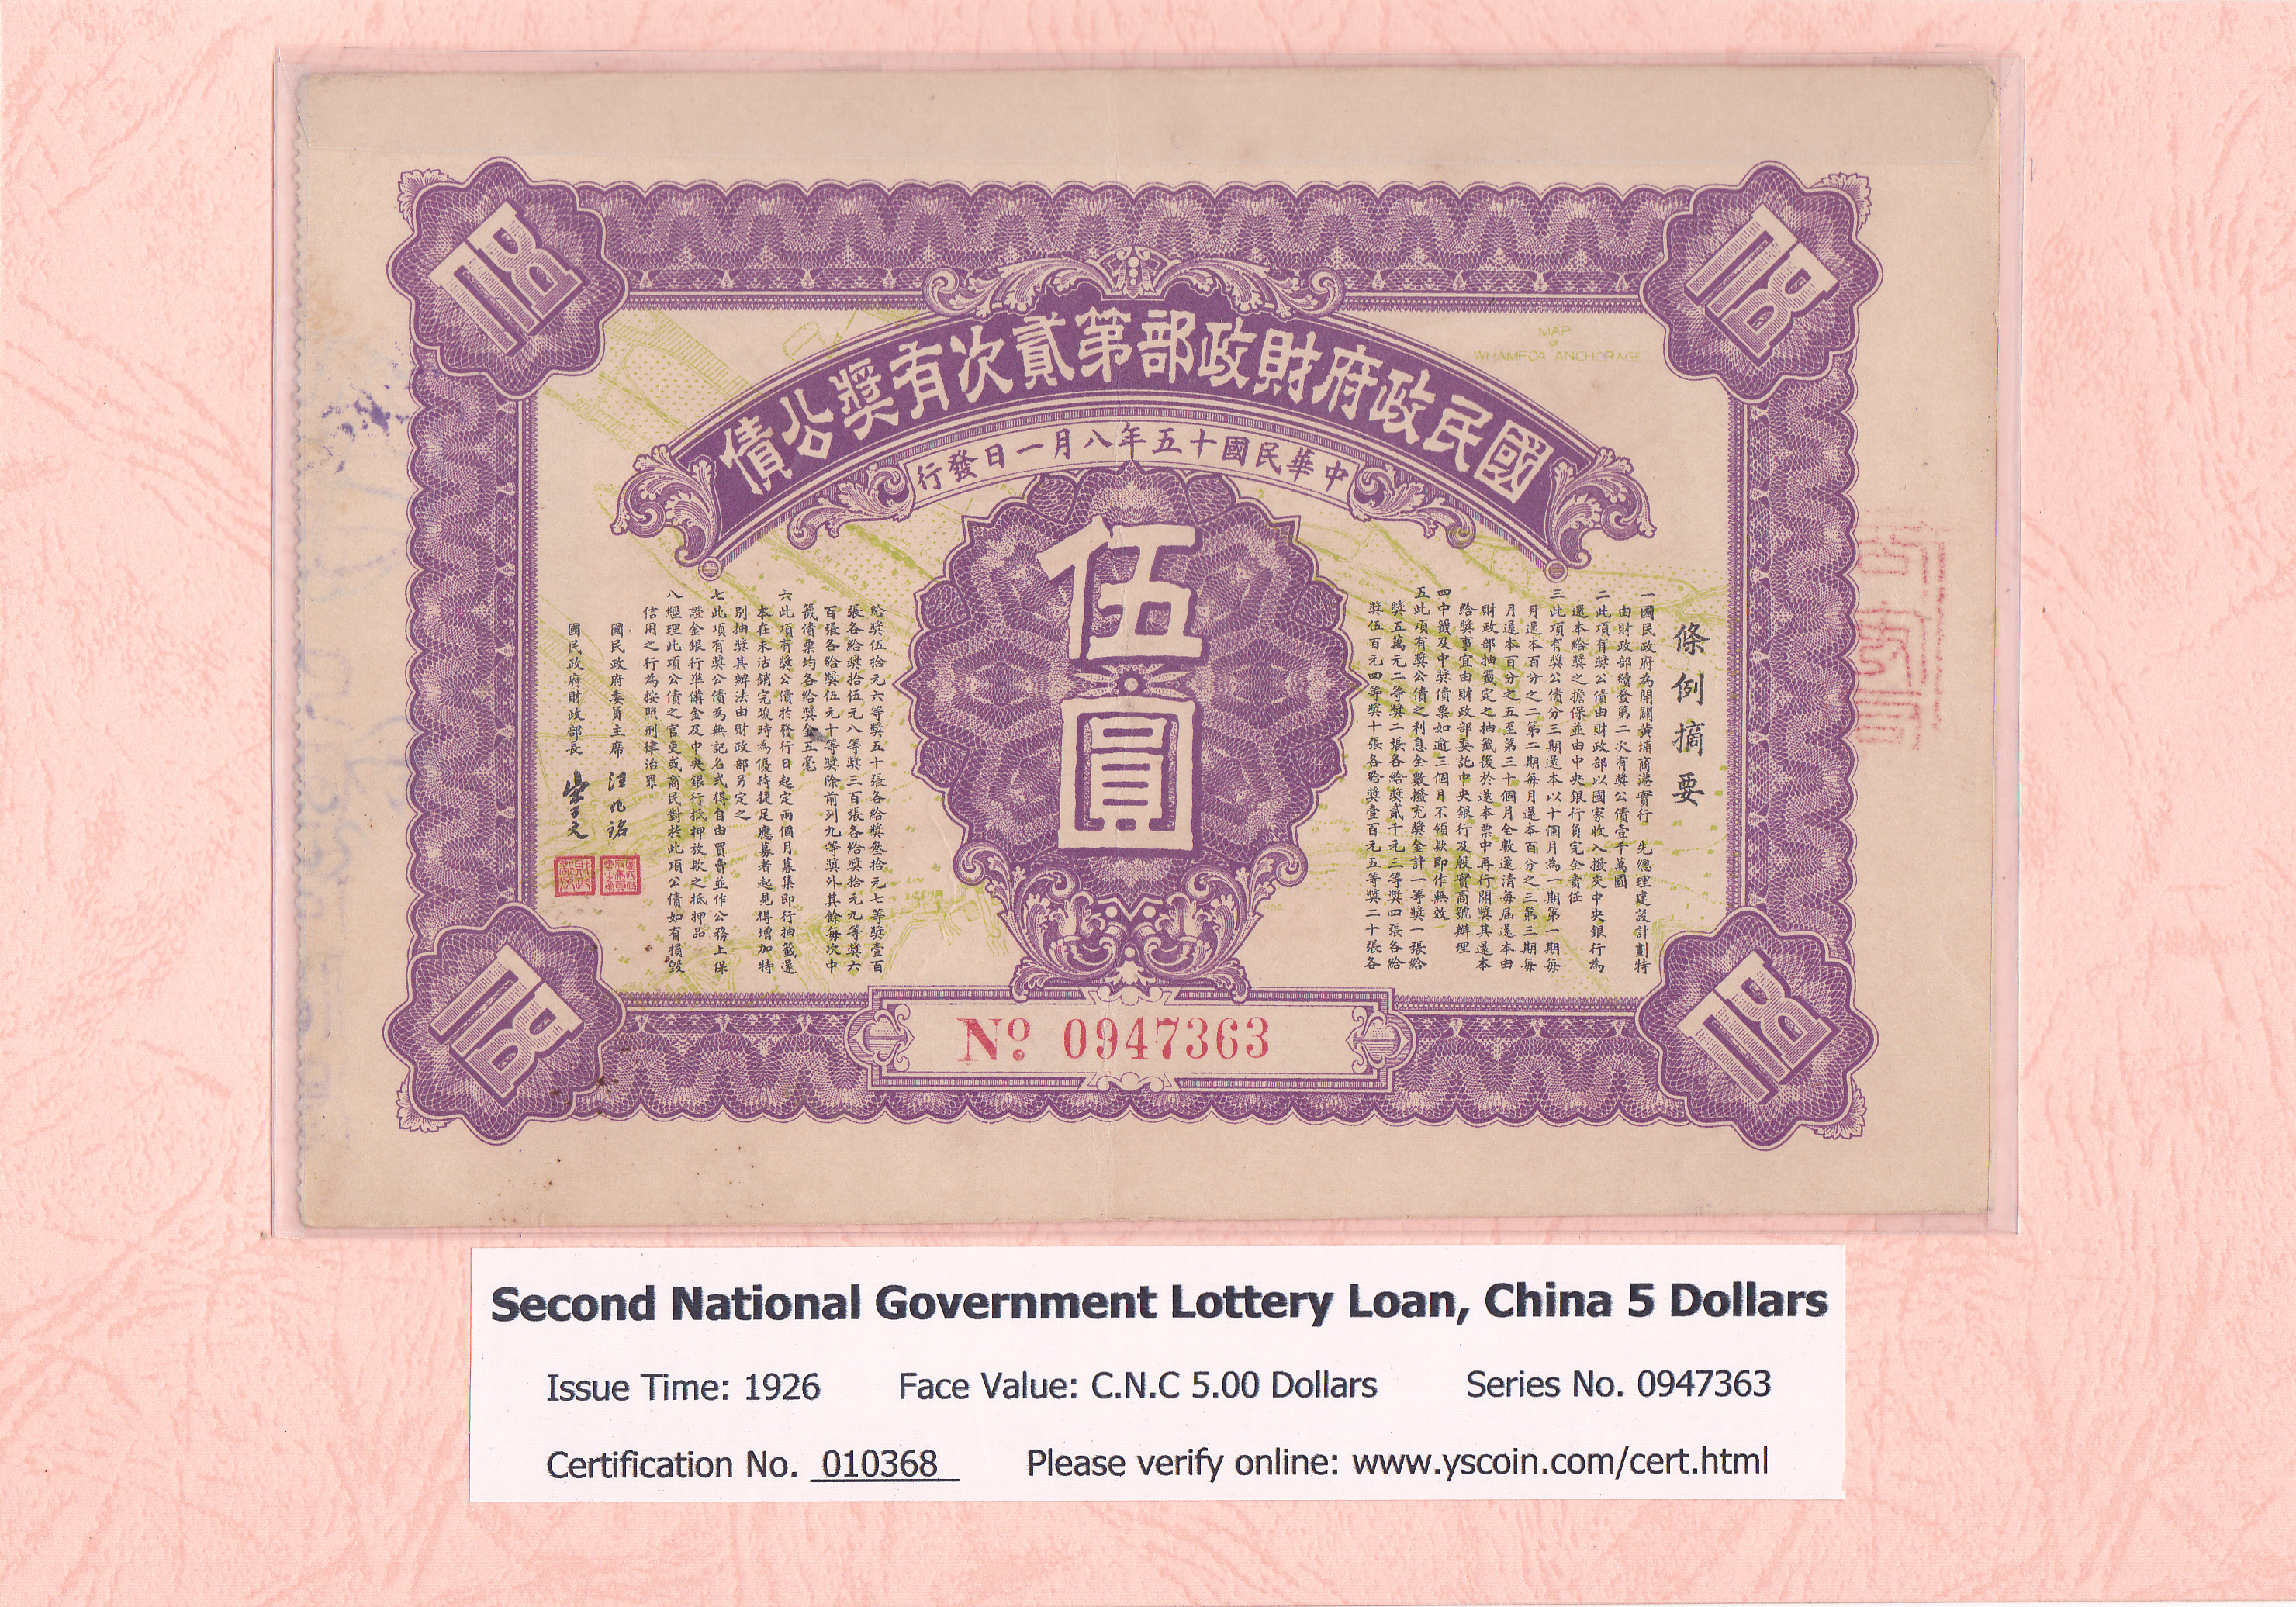 010368, Second National Government Lottery Loan, China 5 Dollars